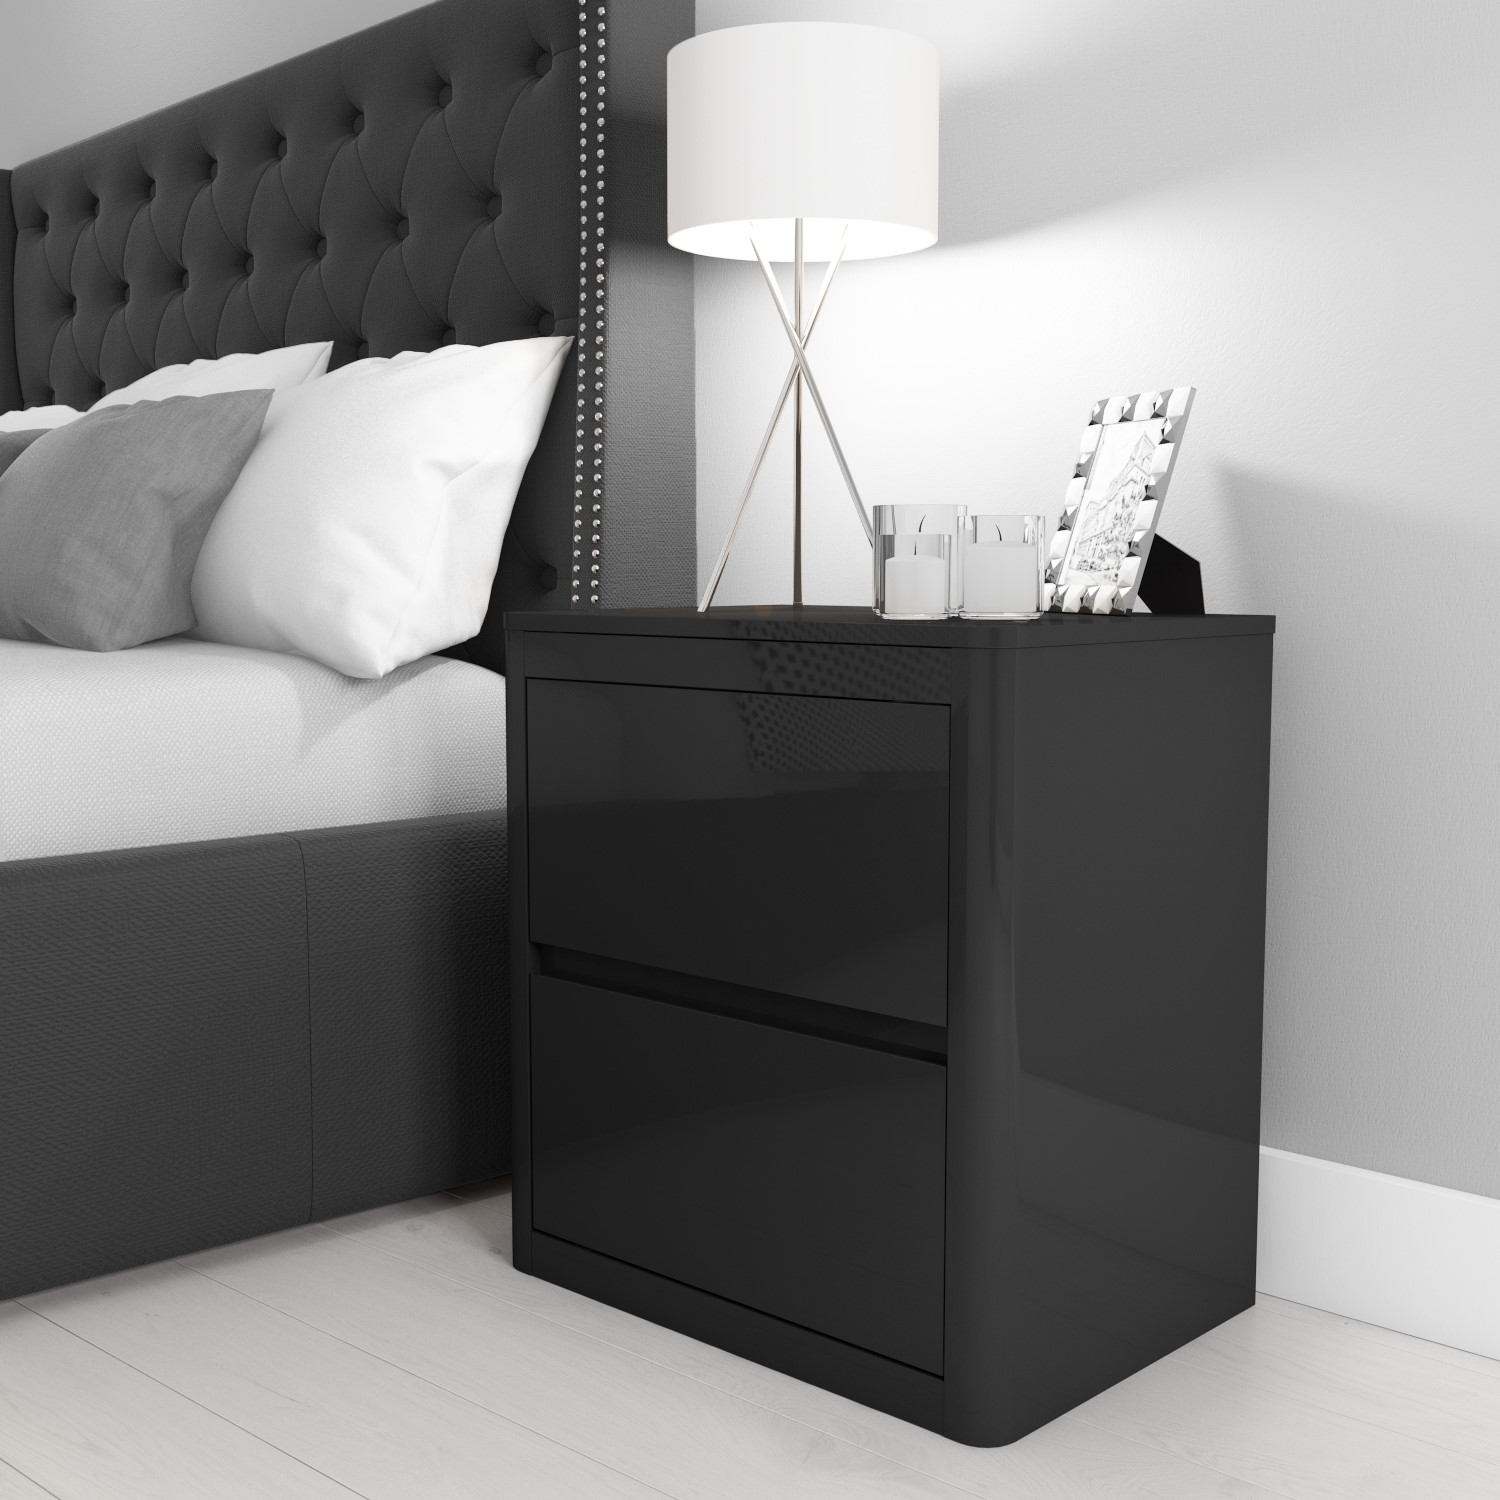 Lexi High Gloss Anthracite Grey 2 Drawer Bedside Table 5056096016796 Ebay